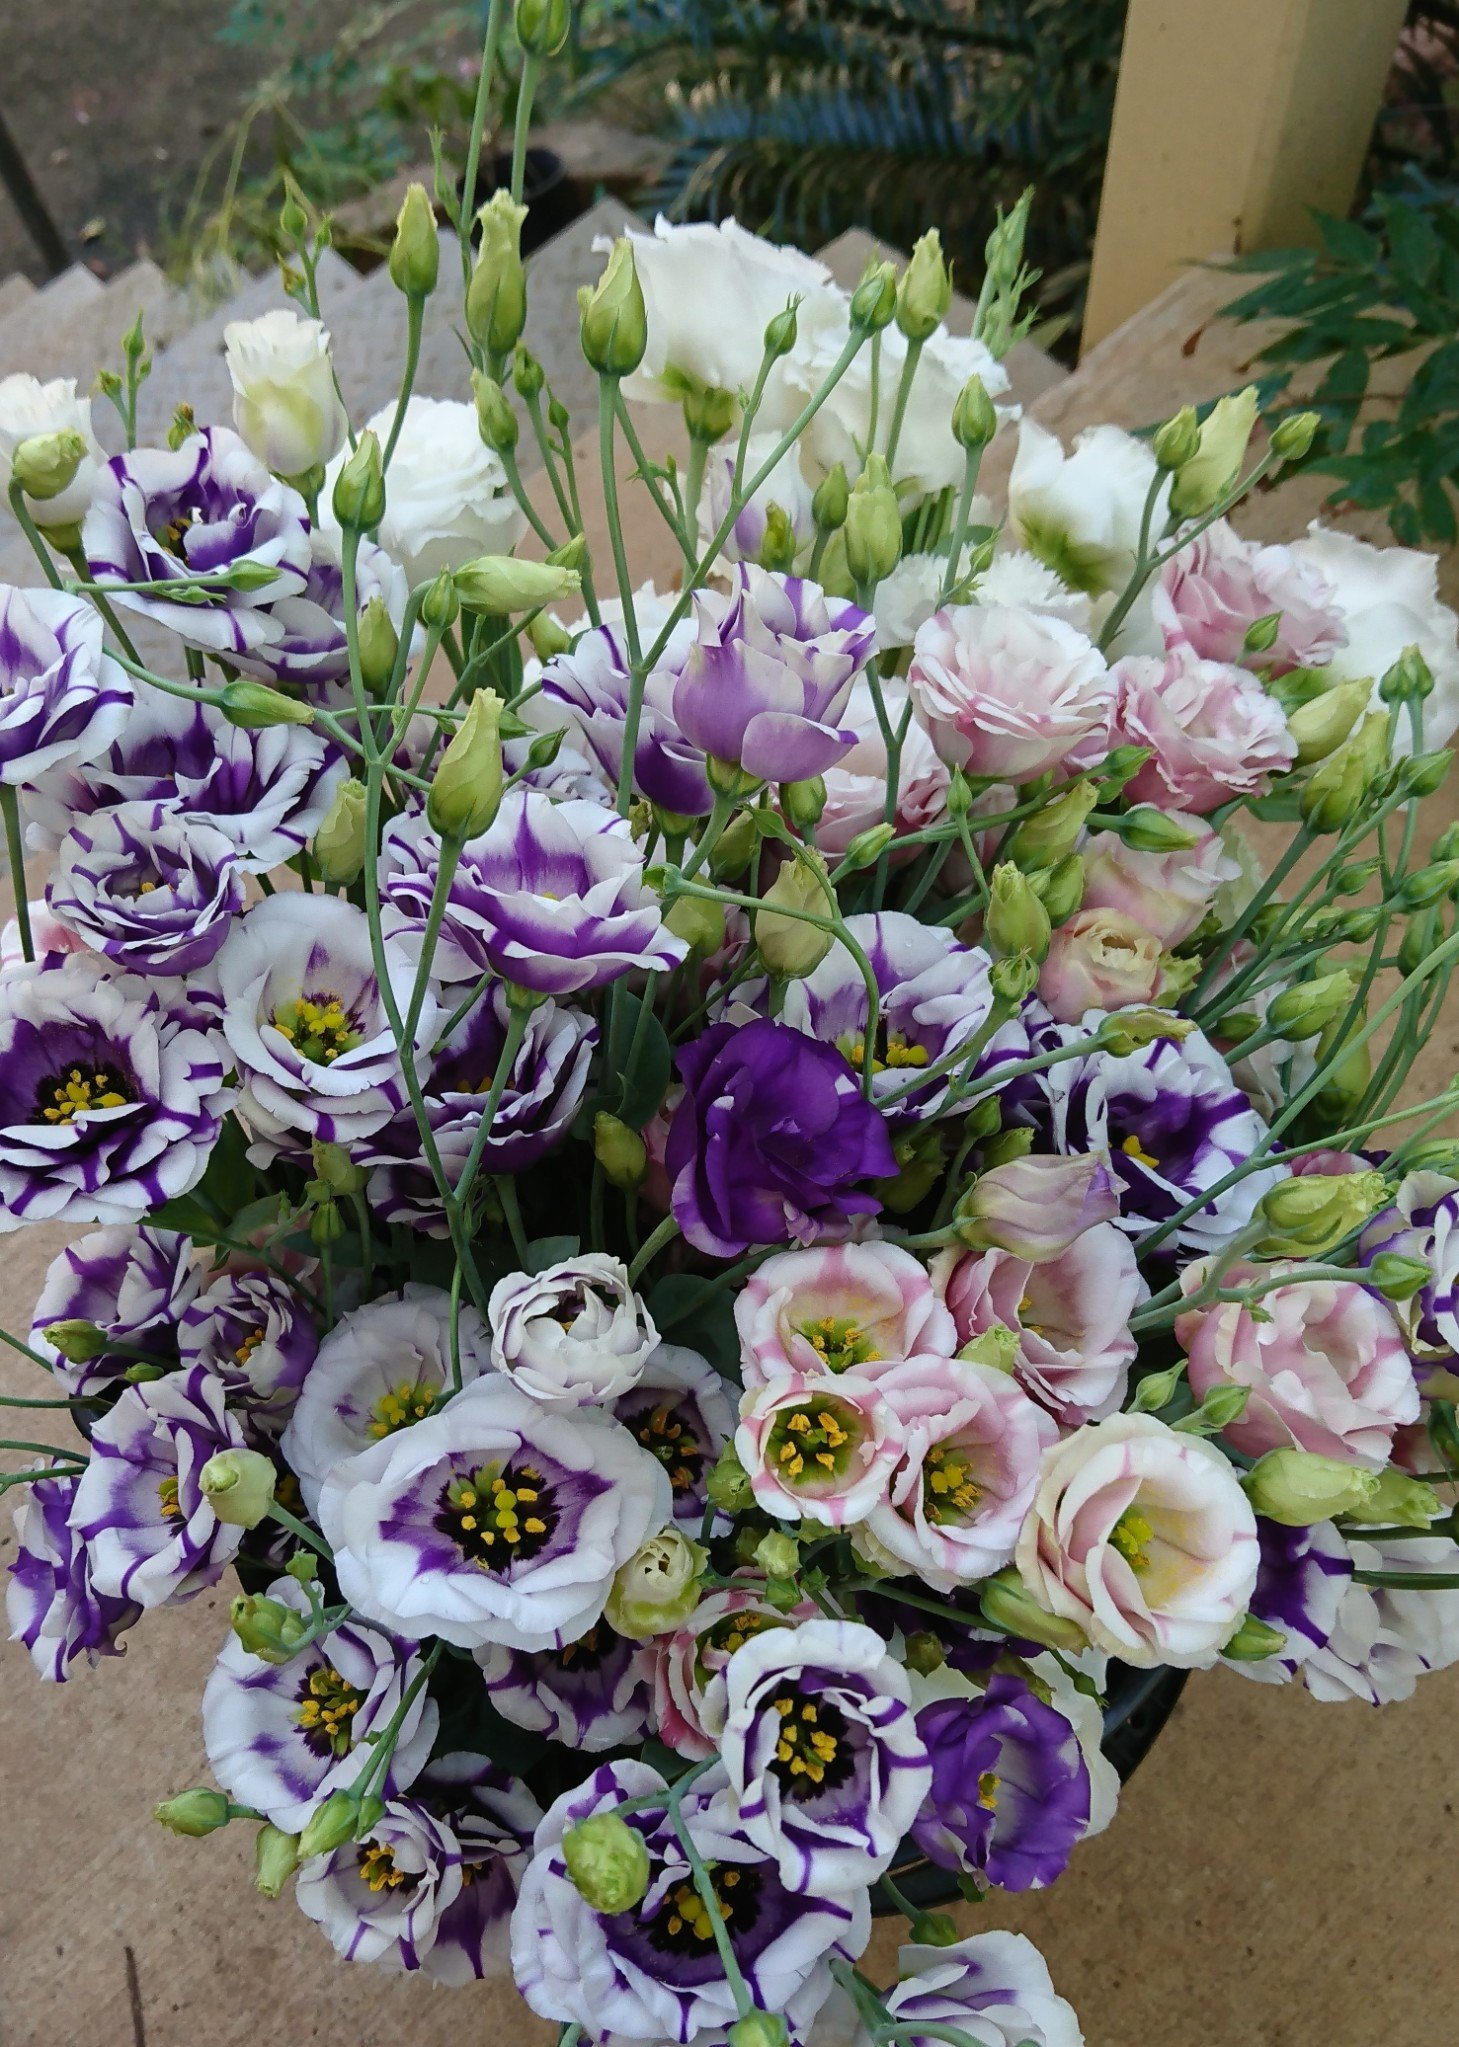 Lisianthus in season most of the year